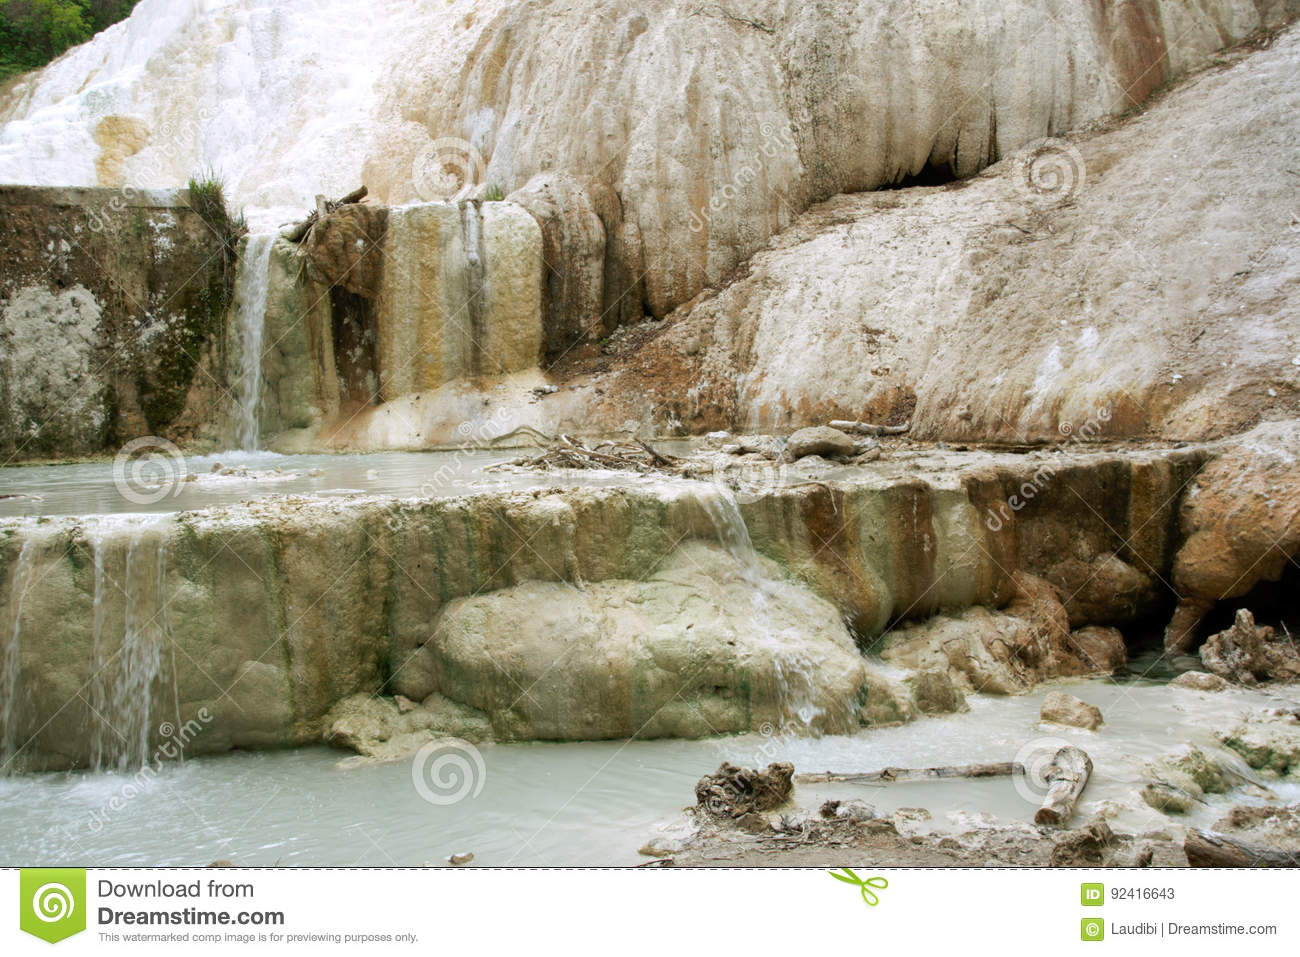 https://thumbs.dreamstime.com/z/spring-thermal-water-bagni-san-filippo-val-d-orcia-tuscany-italy-92416643.jpg